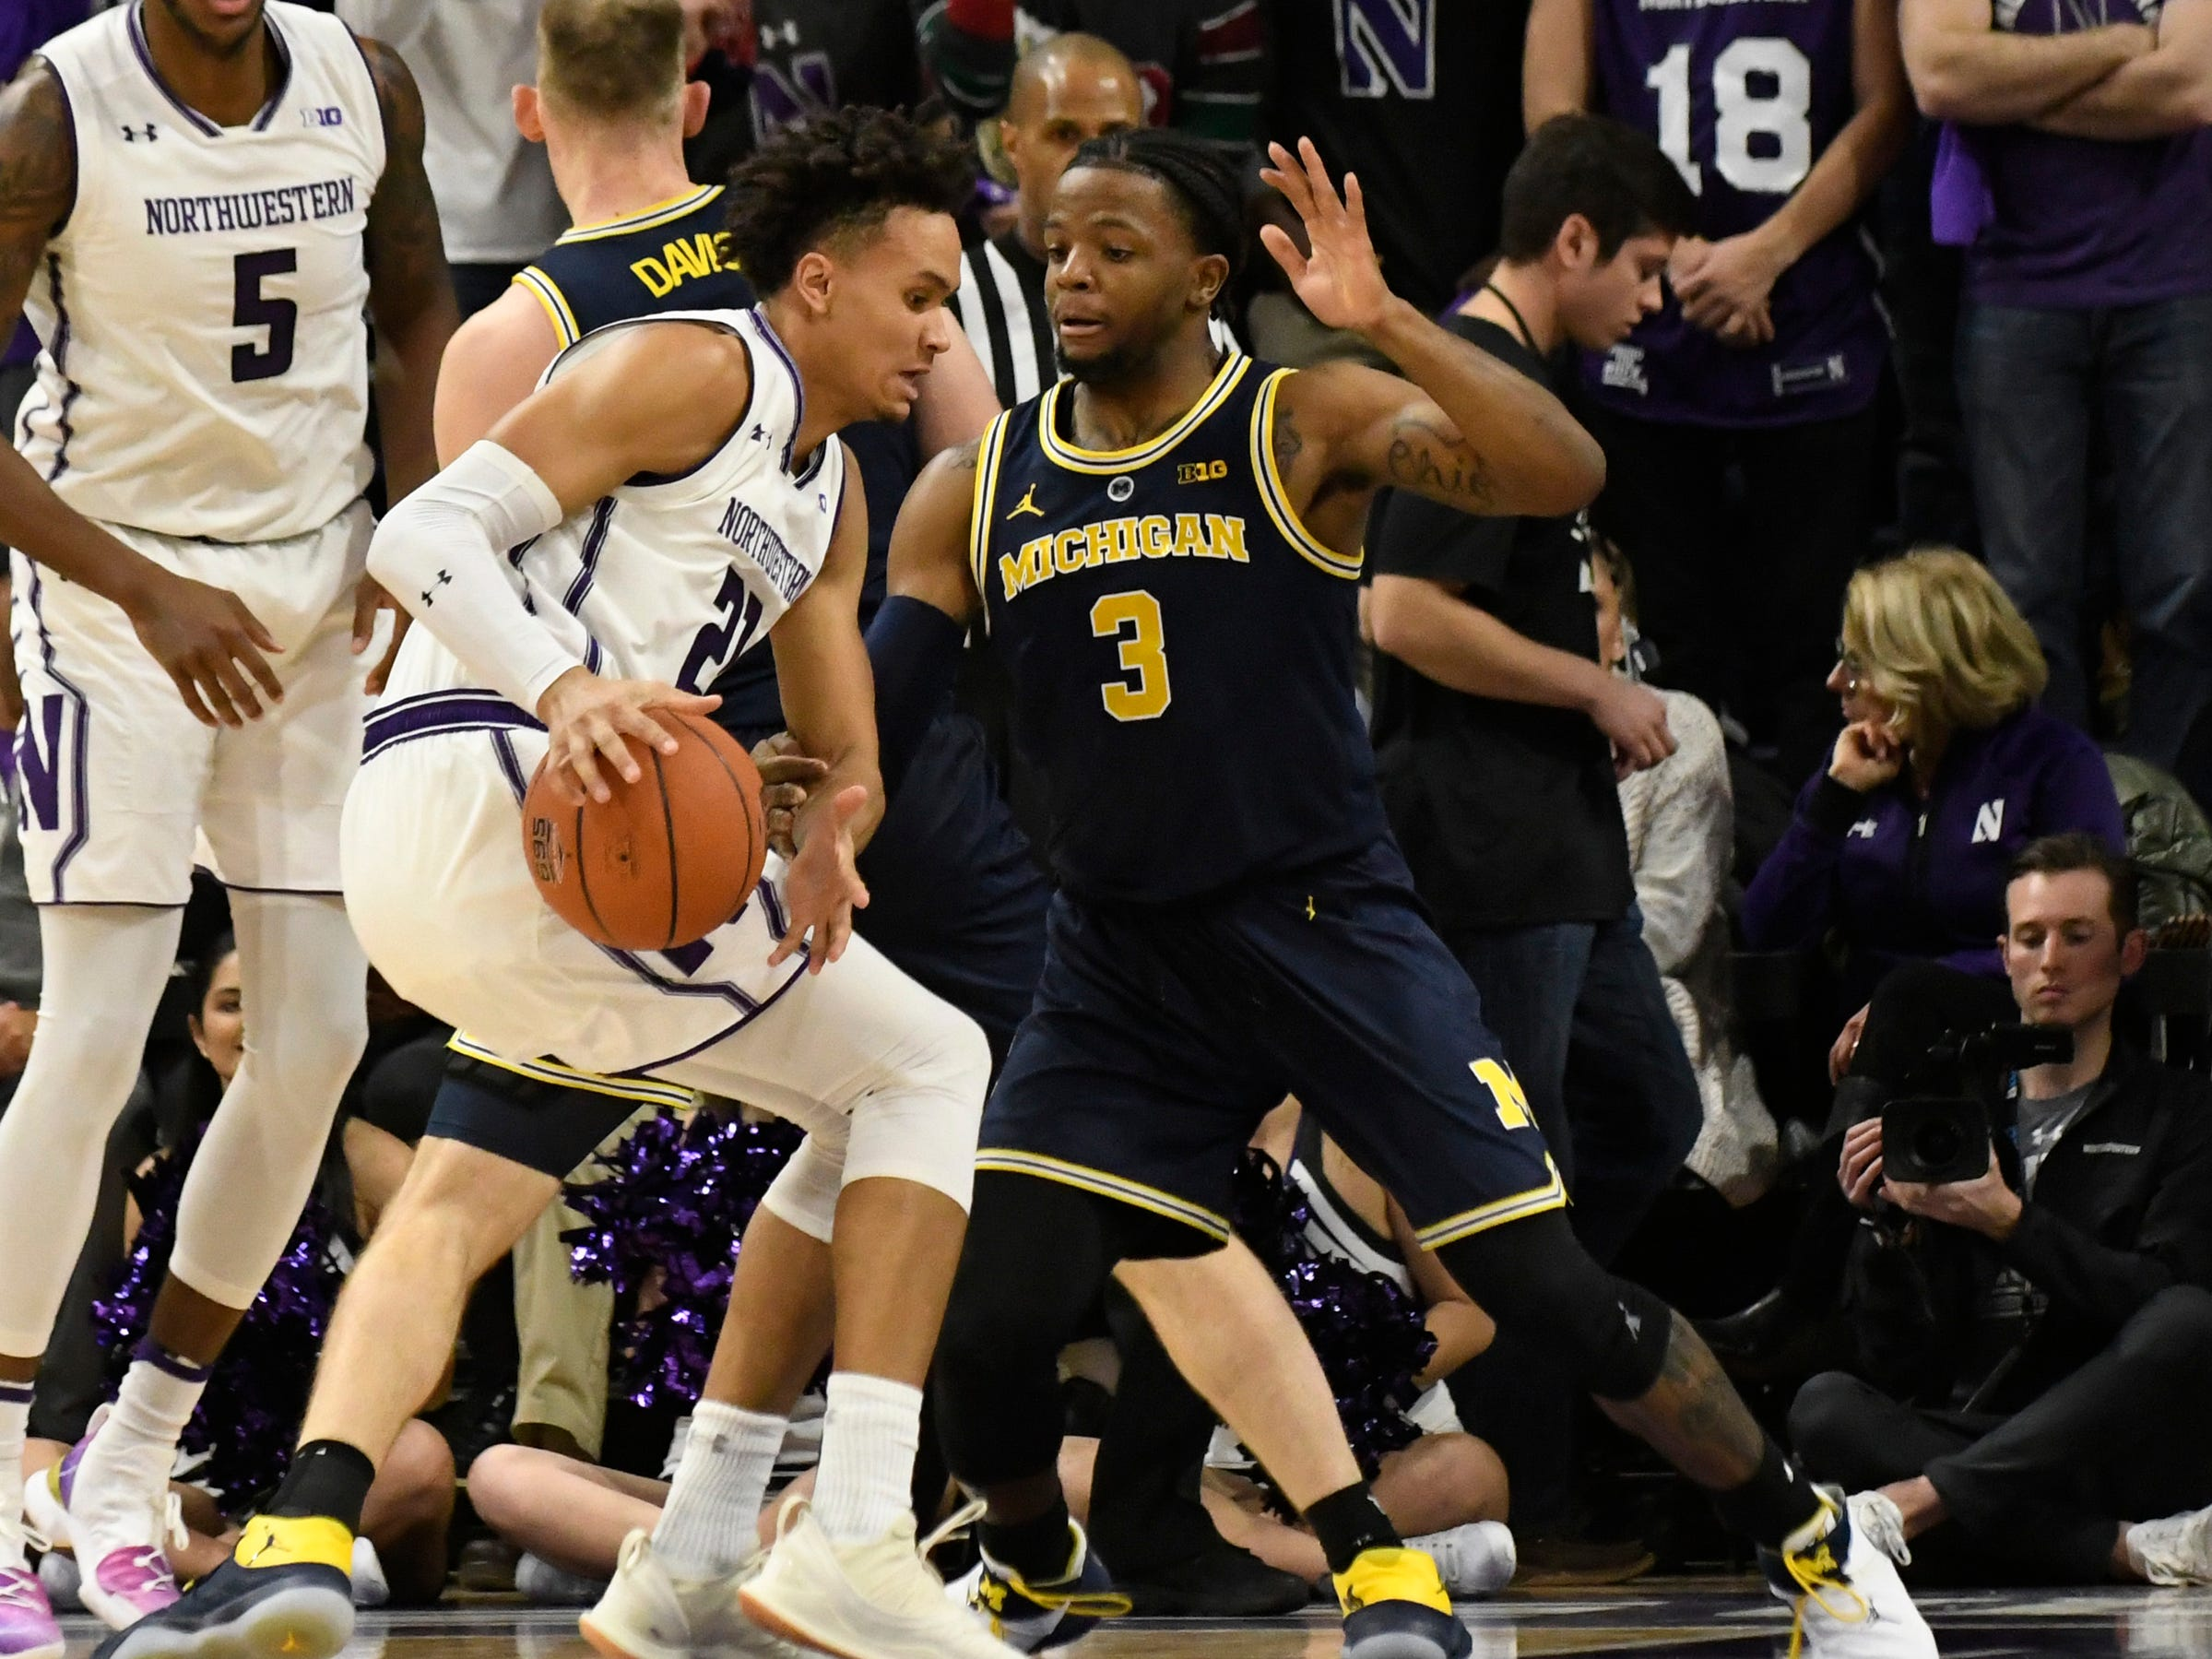 Northwestern forward A.J. Turner is defended by Michigan guard Zavier Simpson during the first half at Welsh-Ryan Arena, Dec. 4, 2018 in Evanston, Ill.